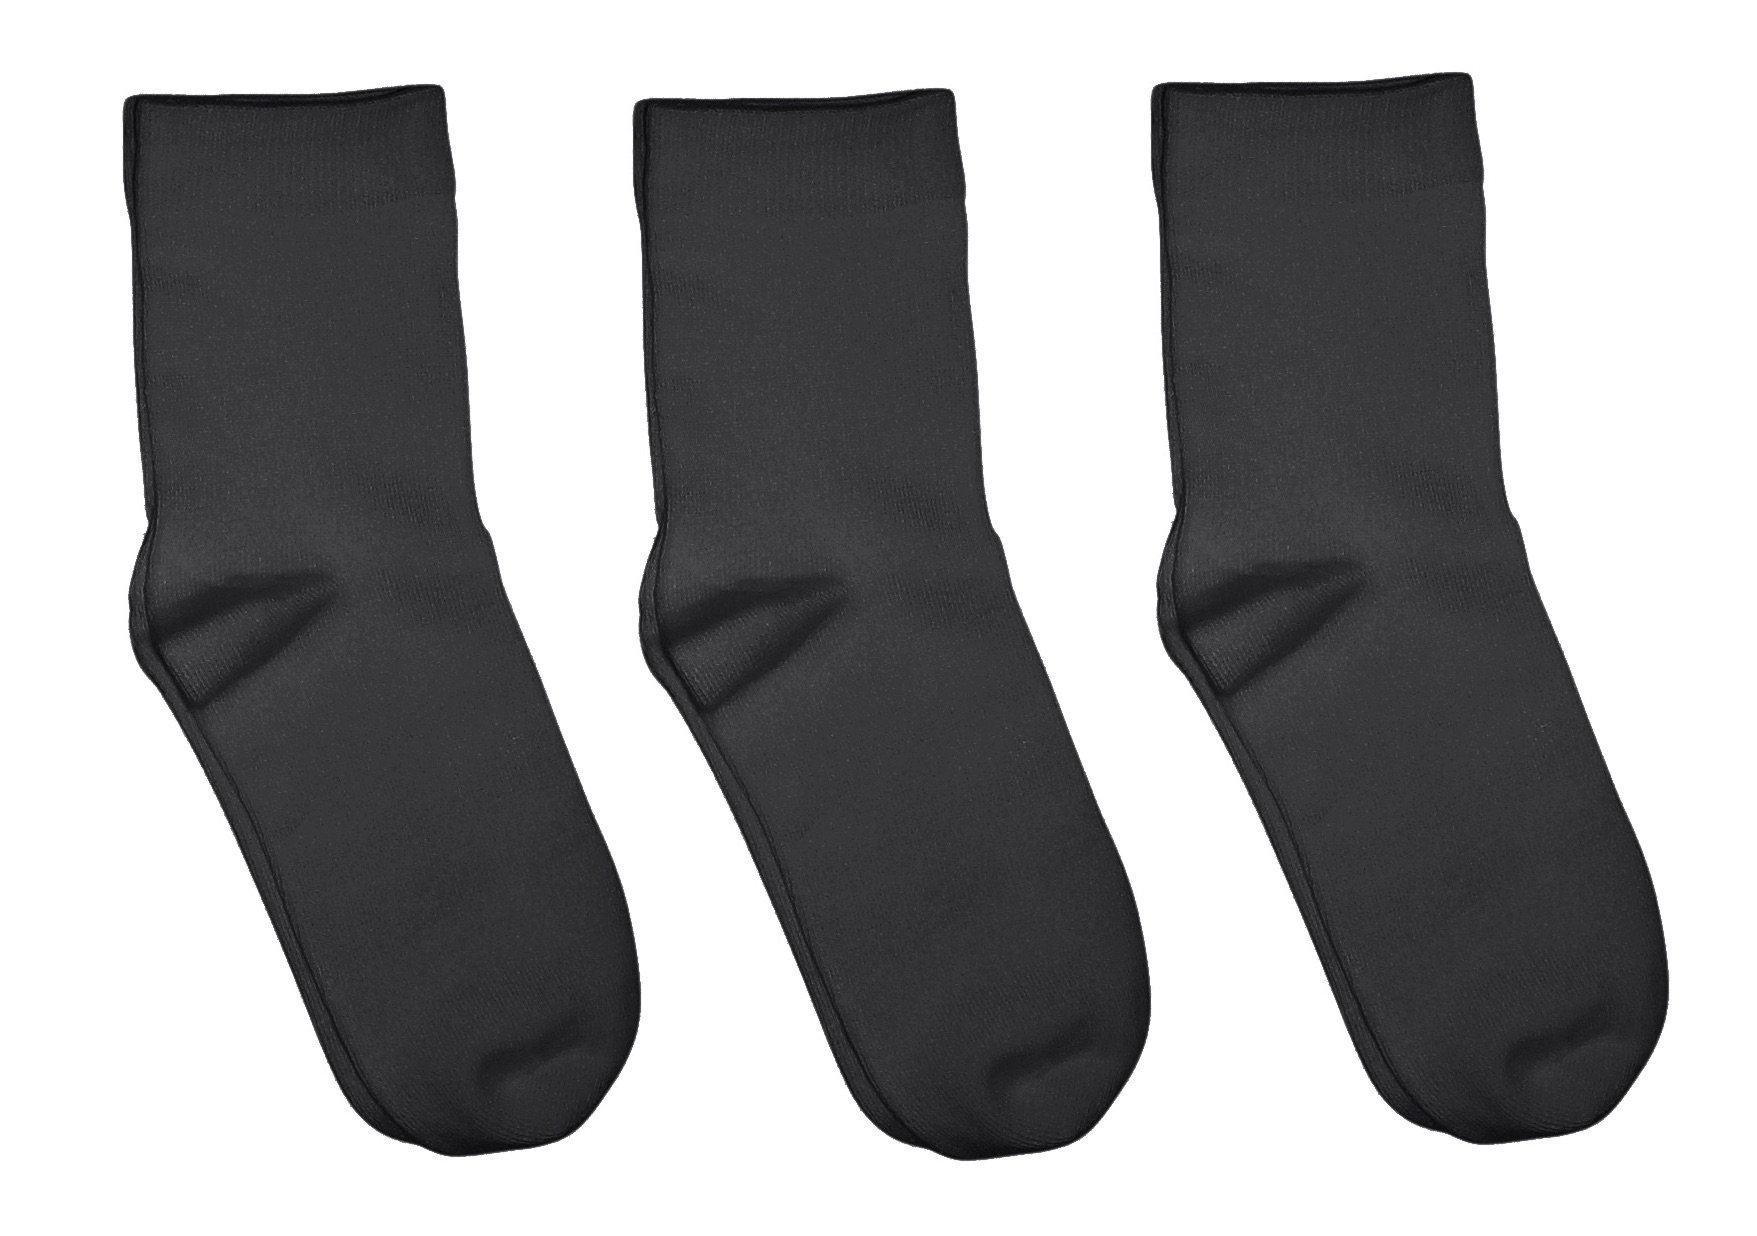 Rambutan Kids (3 Pack) Comfort Seam Plain Color Bamboo School Socks (13-2, Charcoal Gray)